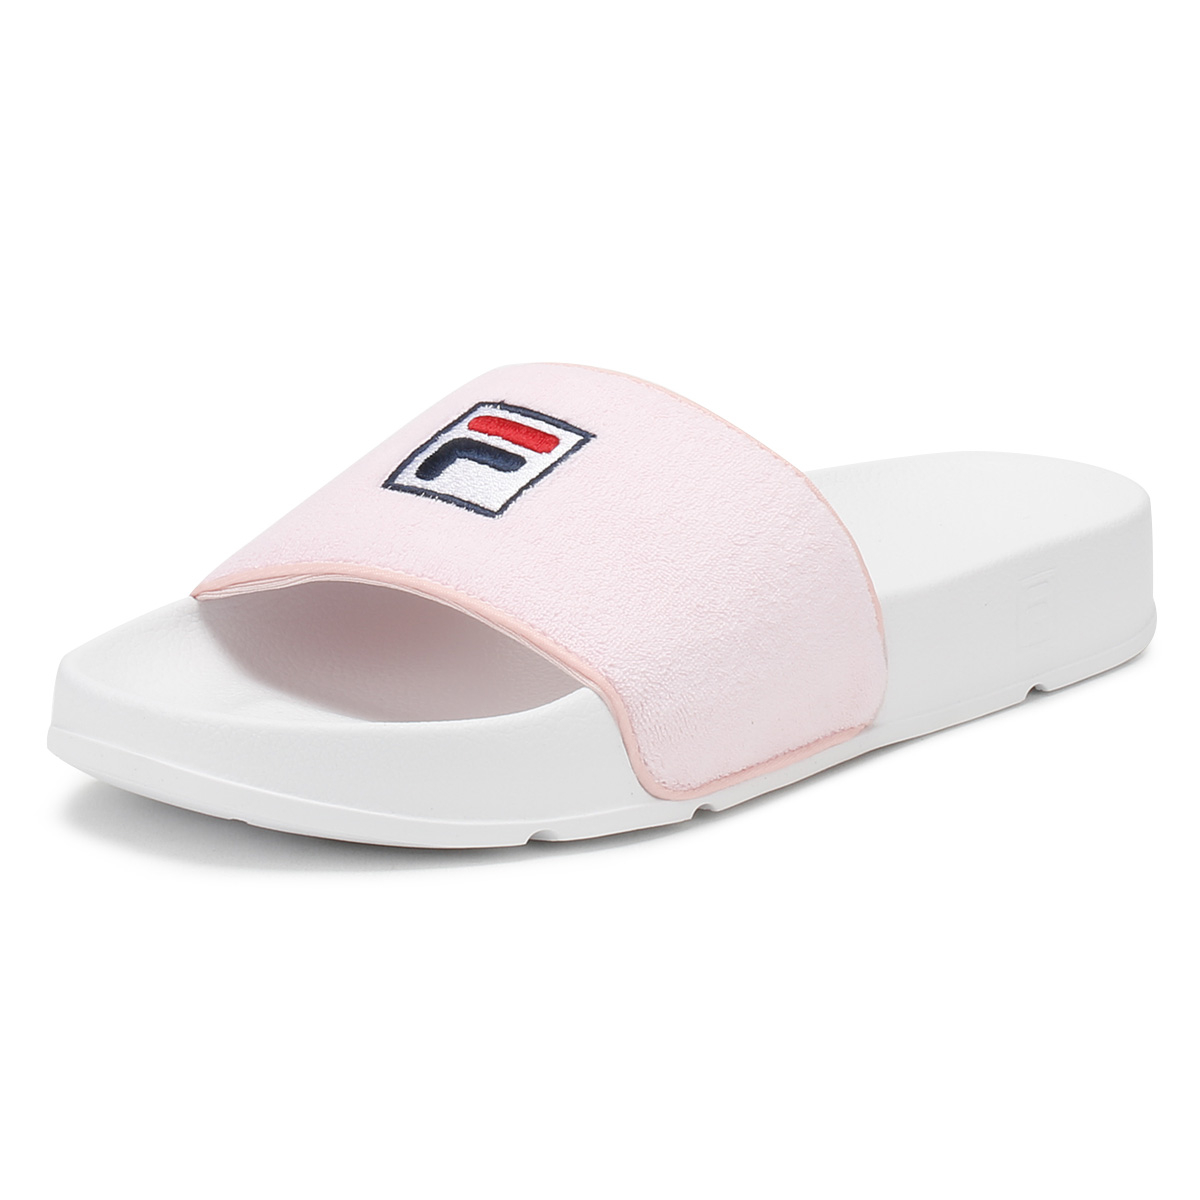 d4eef2b7dcbd Details about Fila Womens Slides Chalk Pink   White Drifter Terry Summer  Beach Sandals